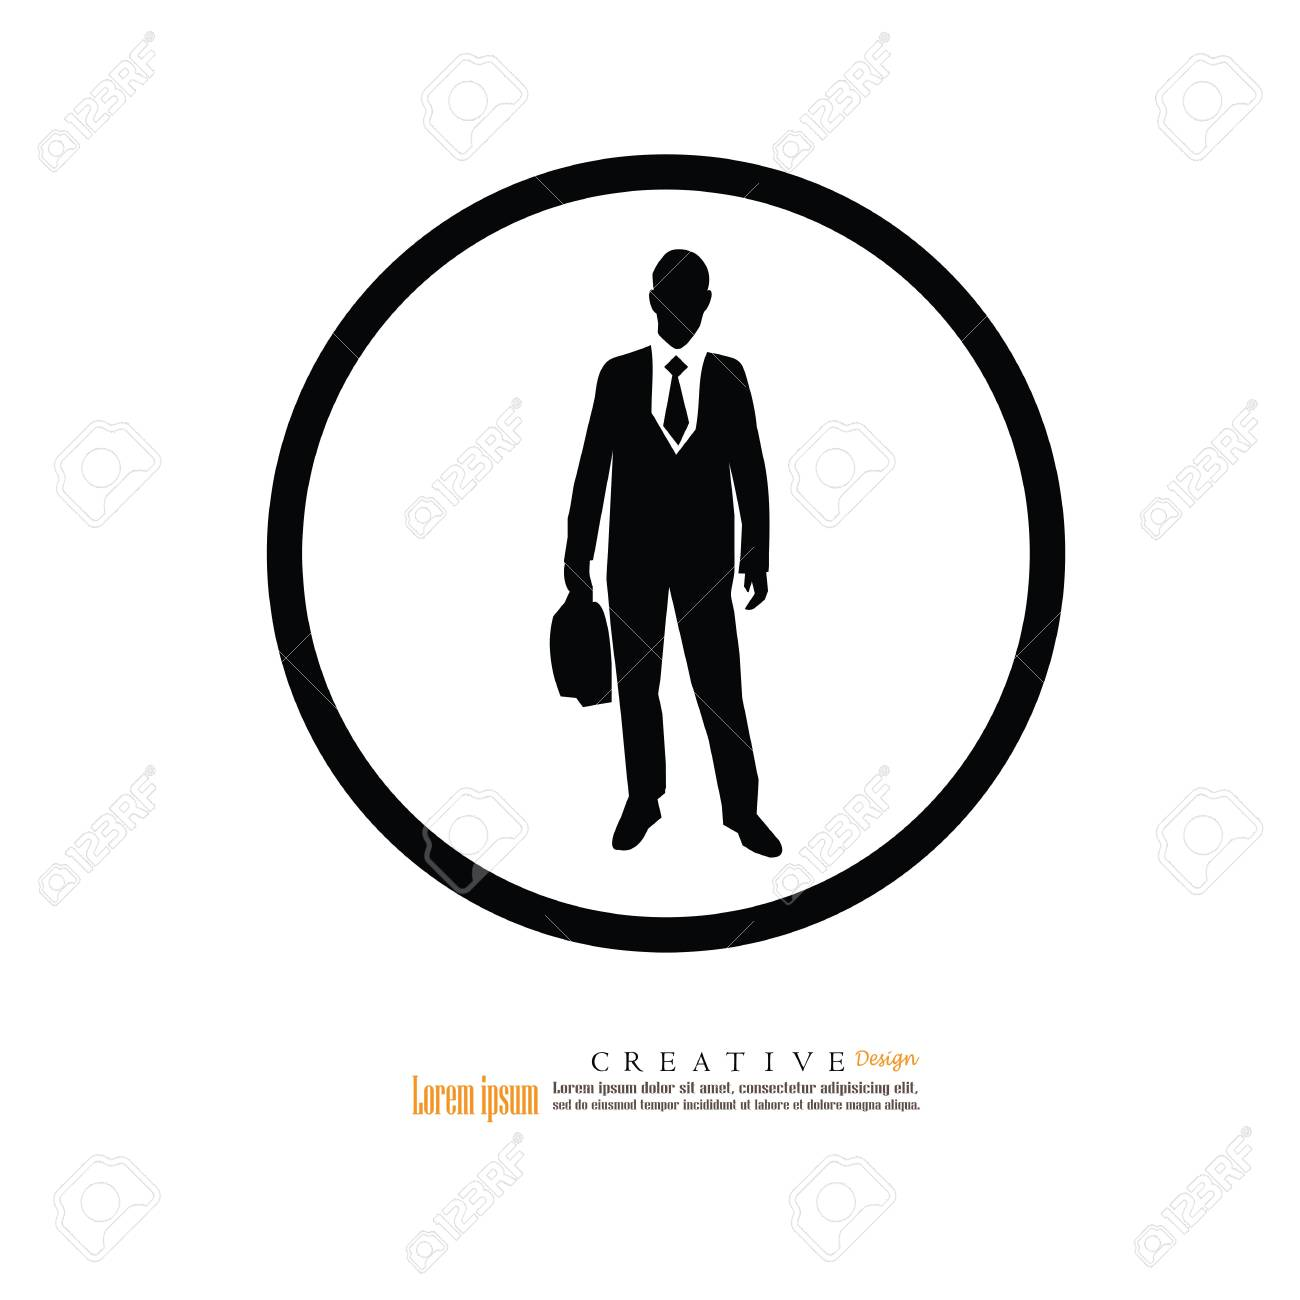 Business man icon. Business man with suit.vector illustration